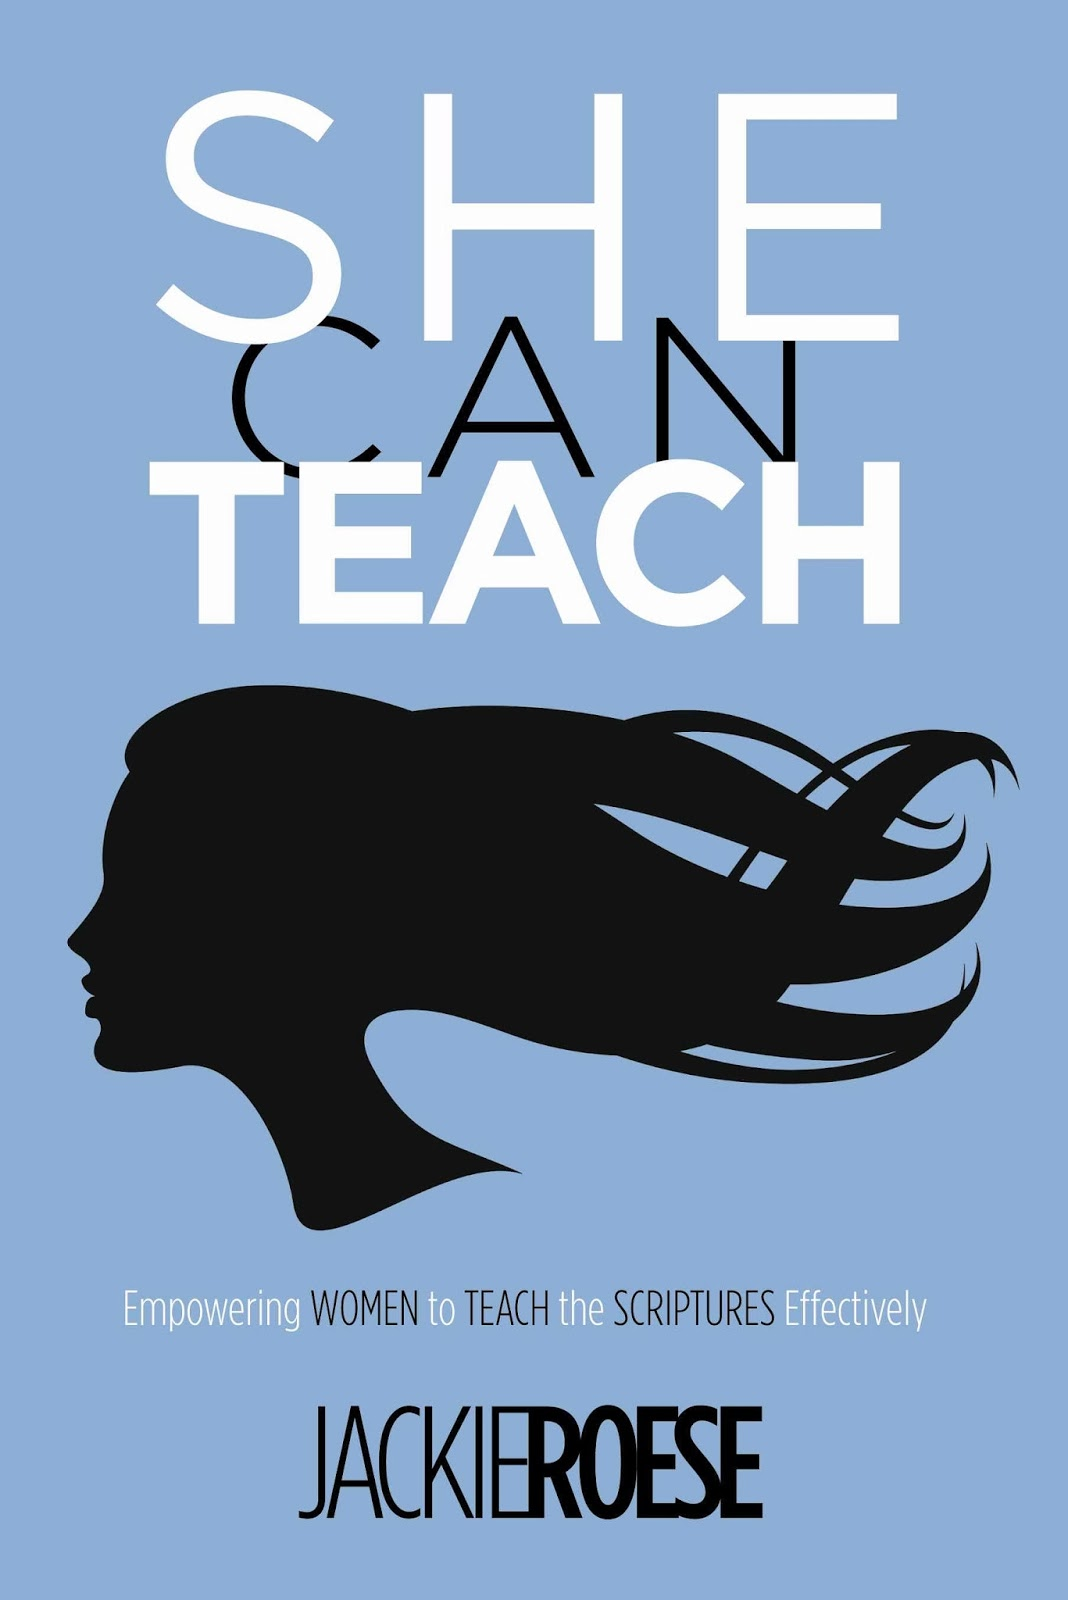 She Can Teach, by Jackie Roese